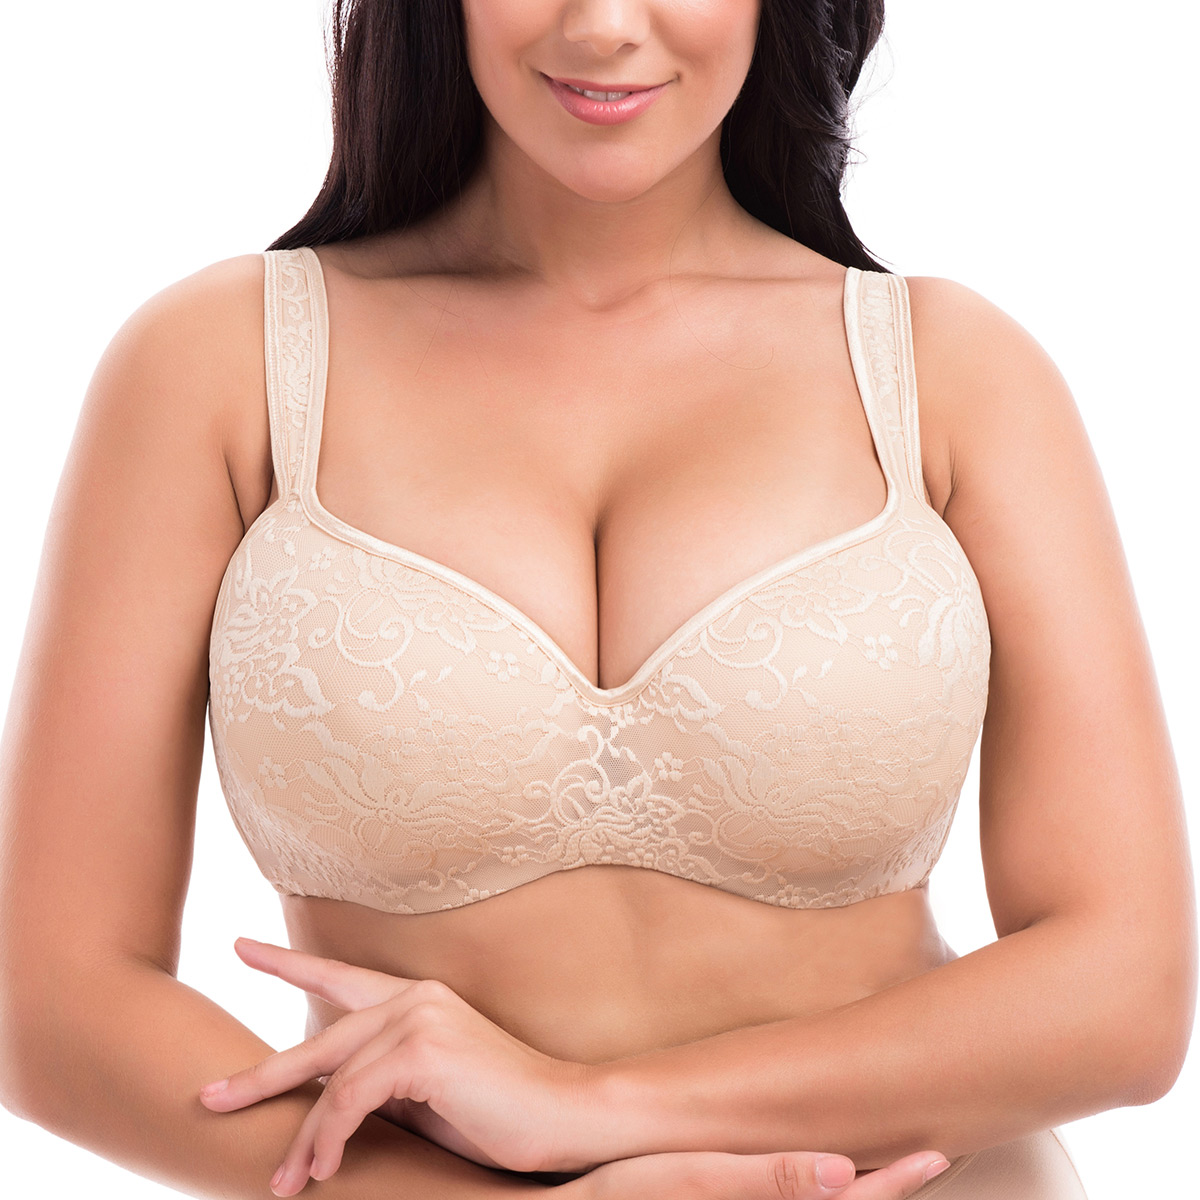 Full figure minimizer bra reduces bust size by one cup. Goddess Women's Plus Size Heather Underwire Banded Bra with Stretch Lace, by Goddess. $ - $ $ 28 $ 64 Prime. FREE Shipping on eligible orders. Some sizes/colors are Prime eligible. out of 5 stars